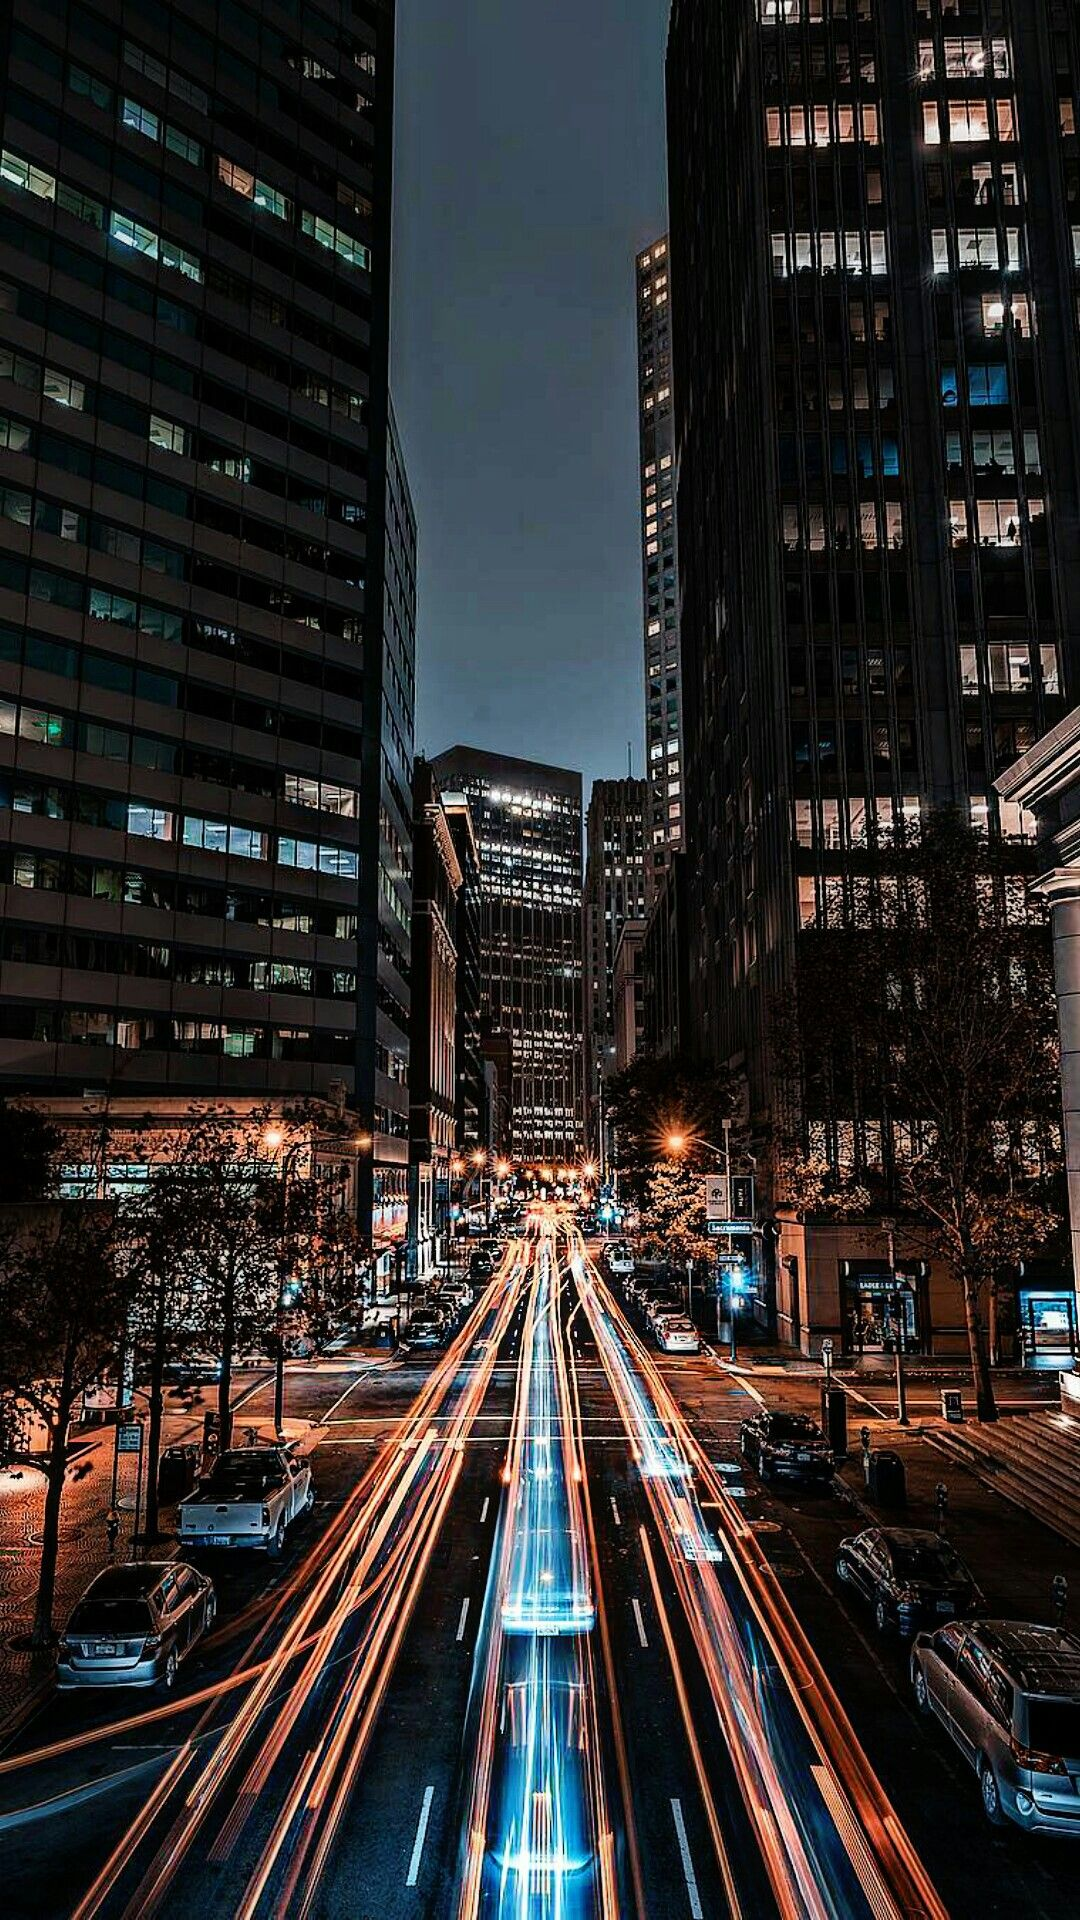 Pin By Mr Jett K On City Buildings City Aesthetic City Wallpaper City Photography